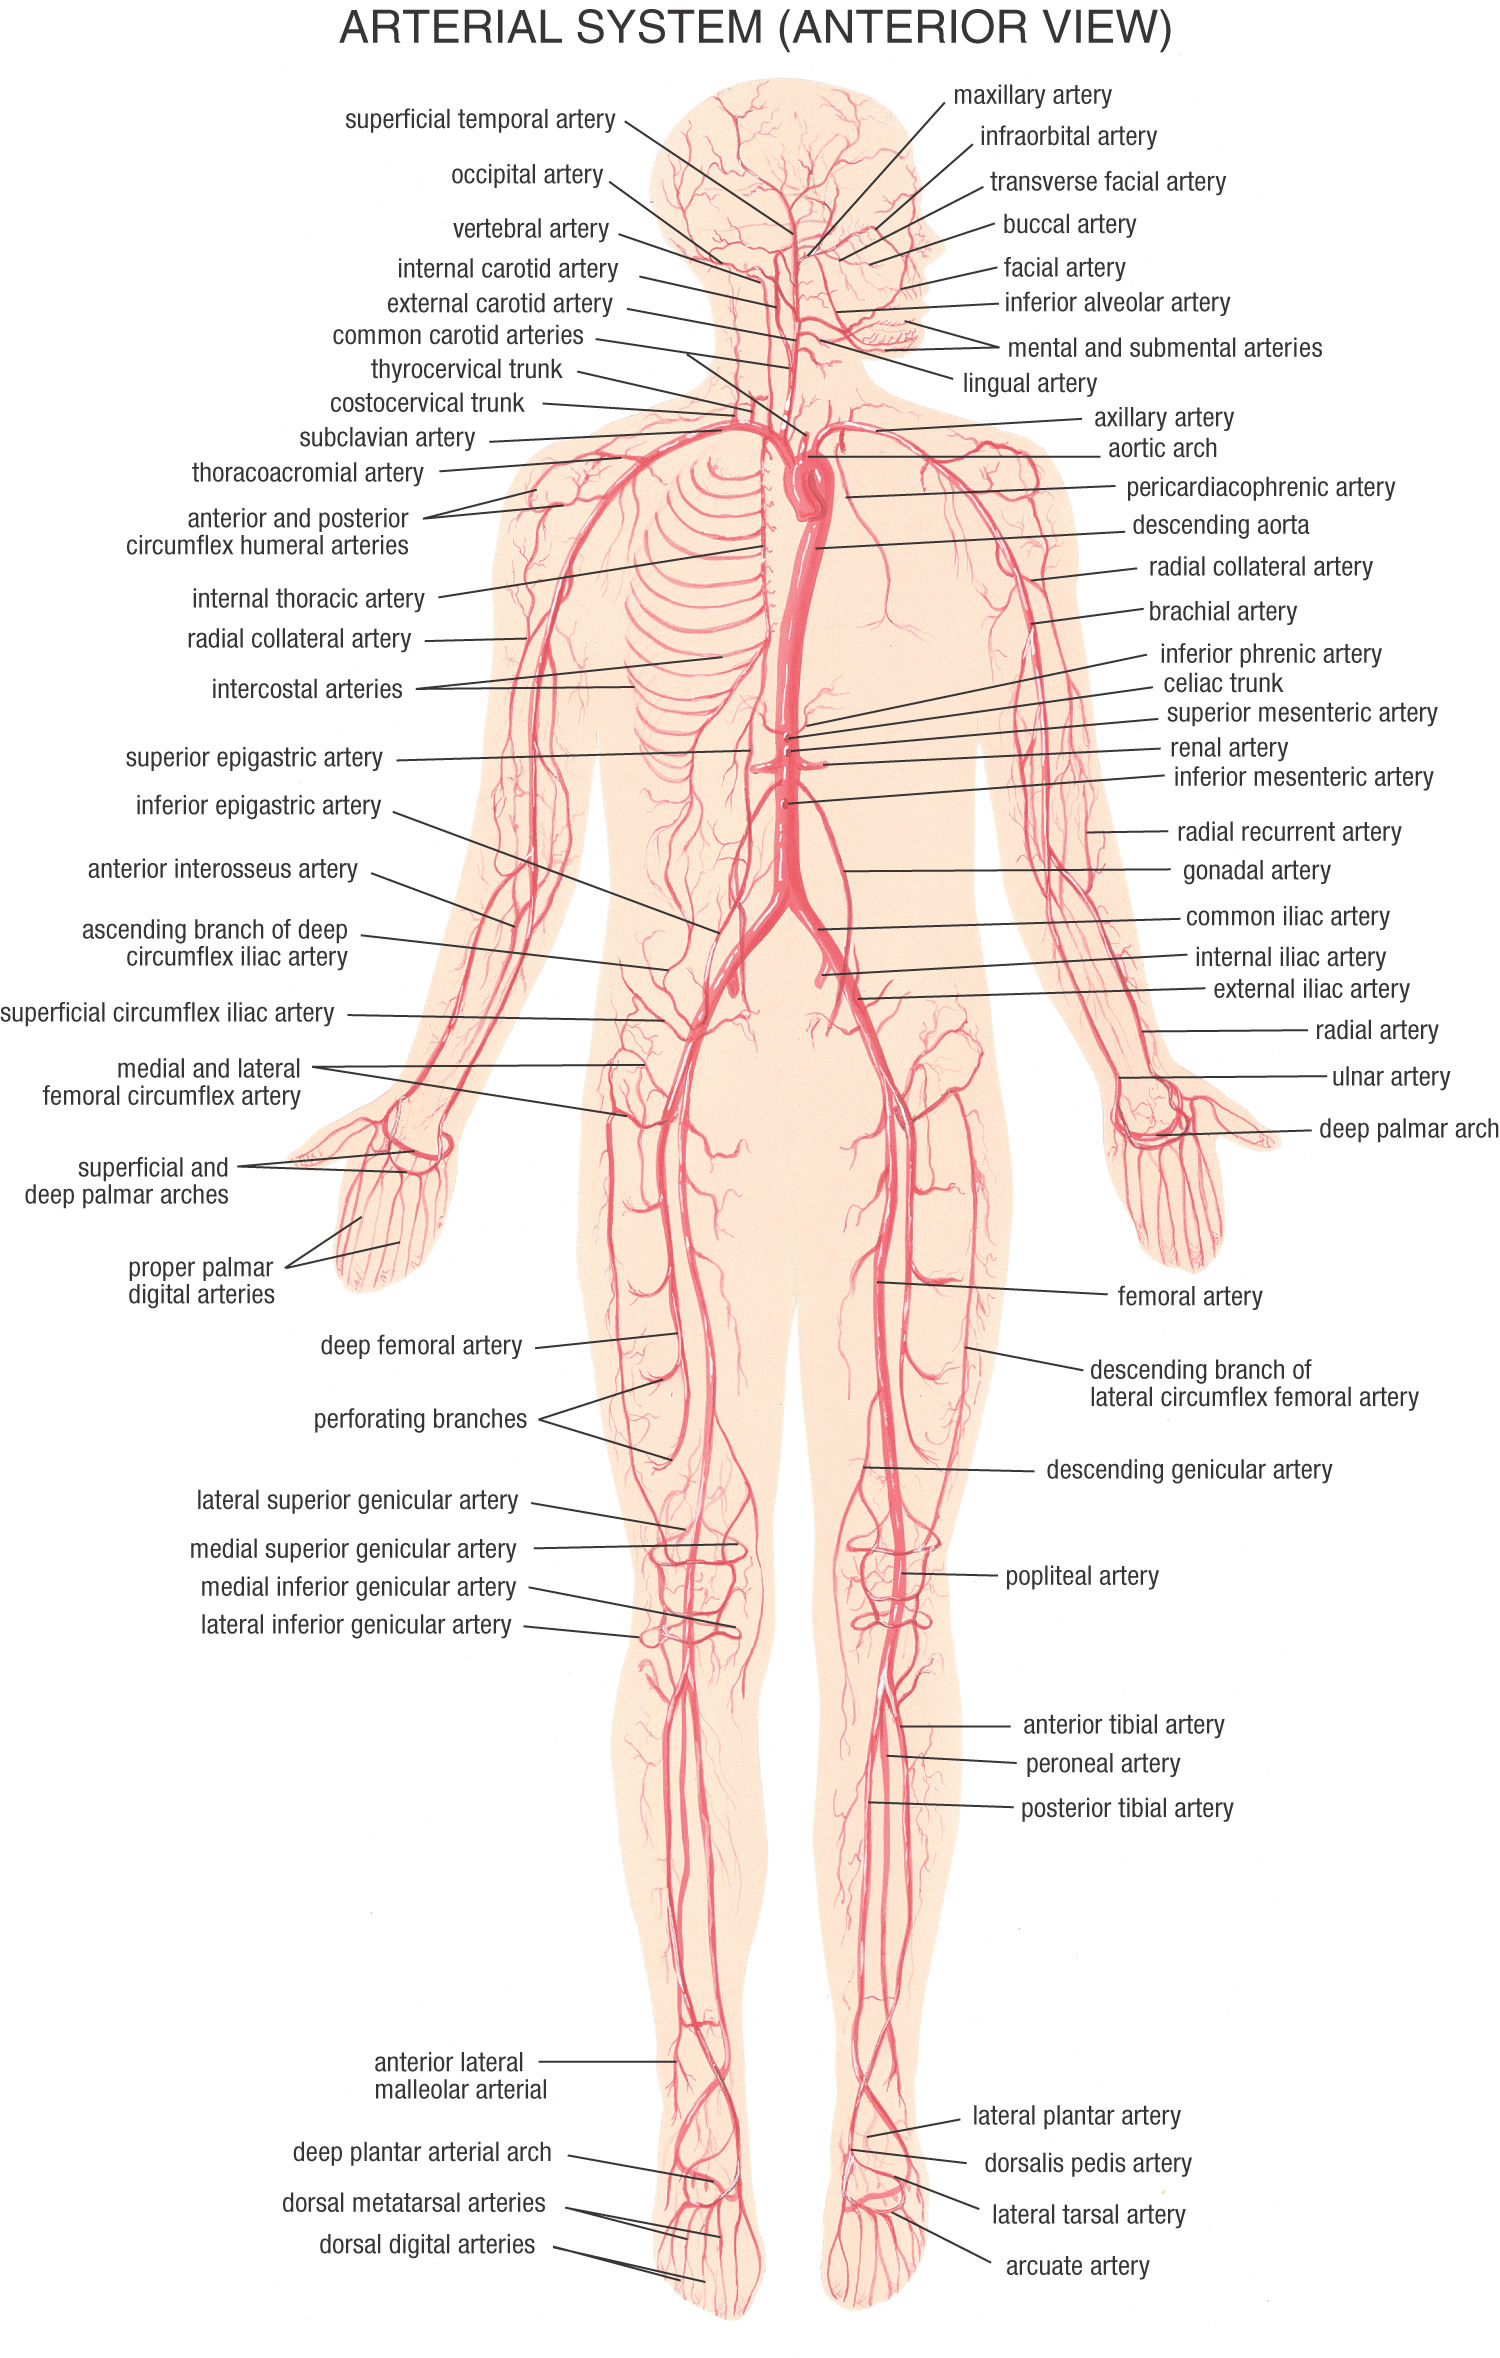 Human Body Arteries and Veins | Know-It-All